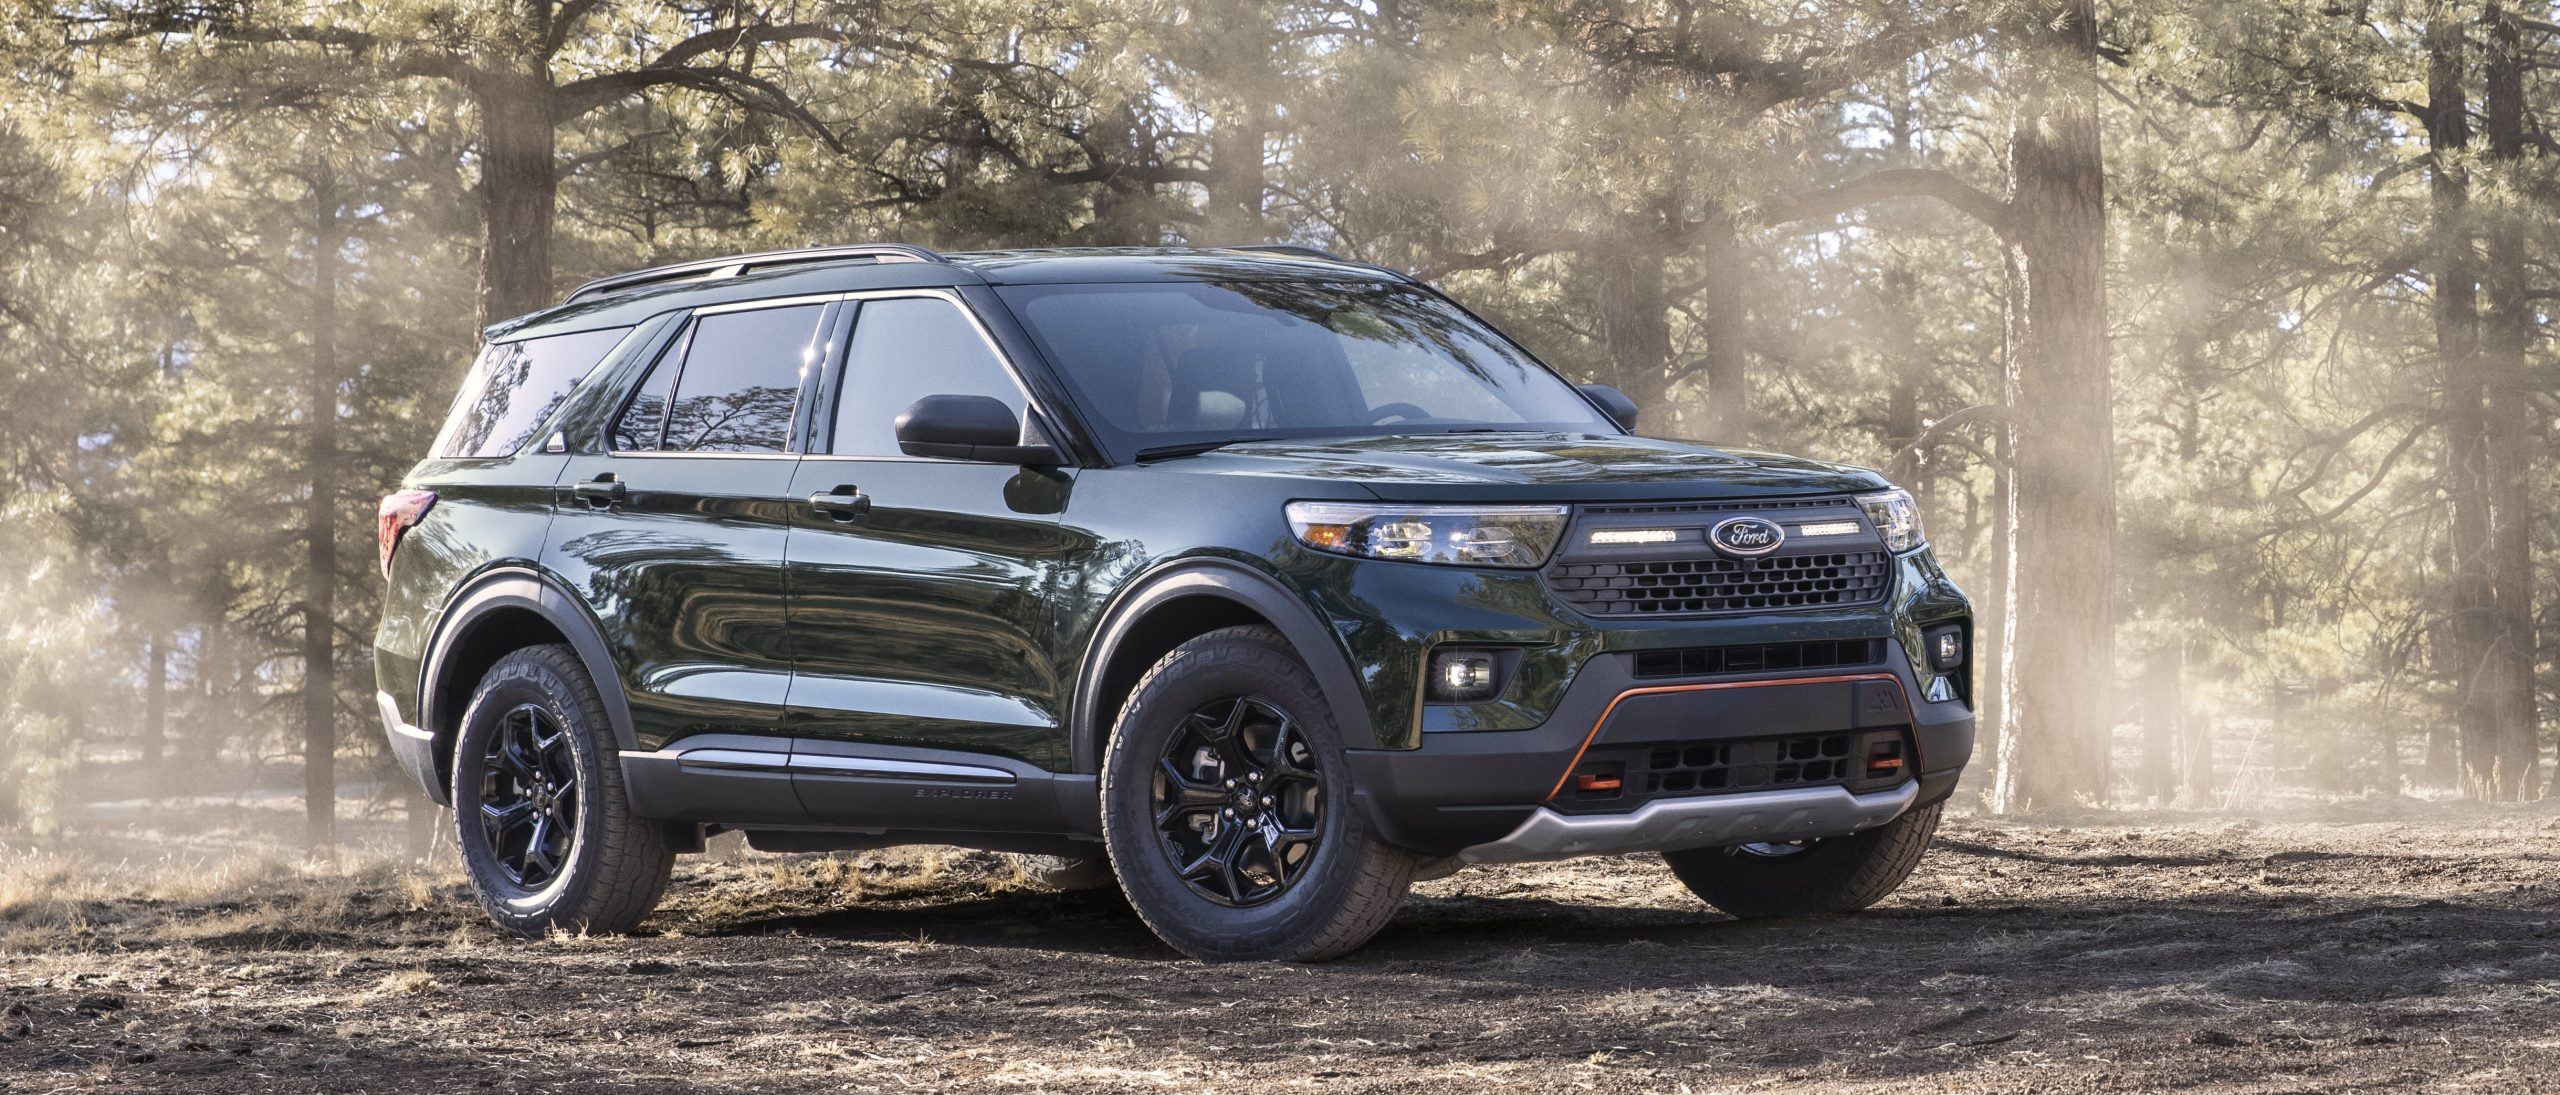 Ford launching new off-road Timberline models starting with Explorer SUV